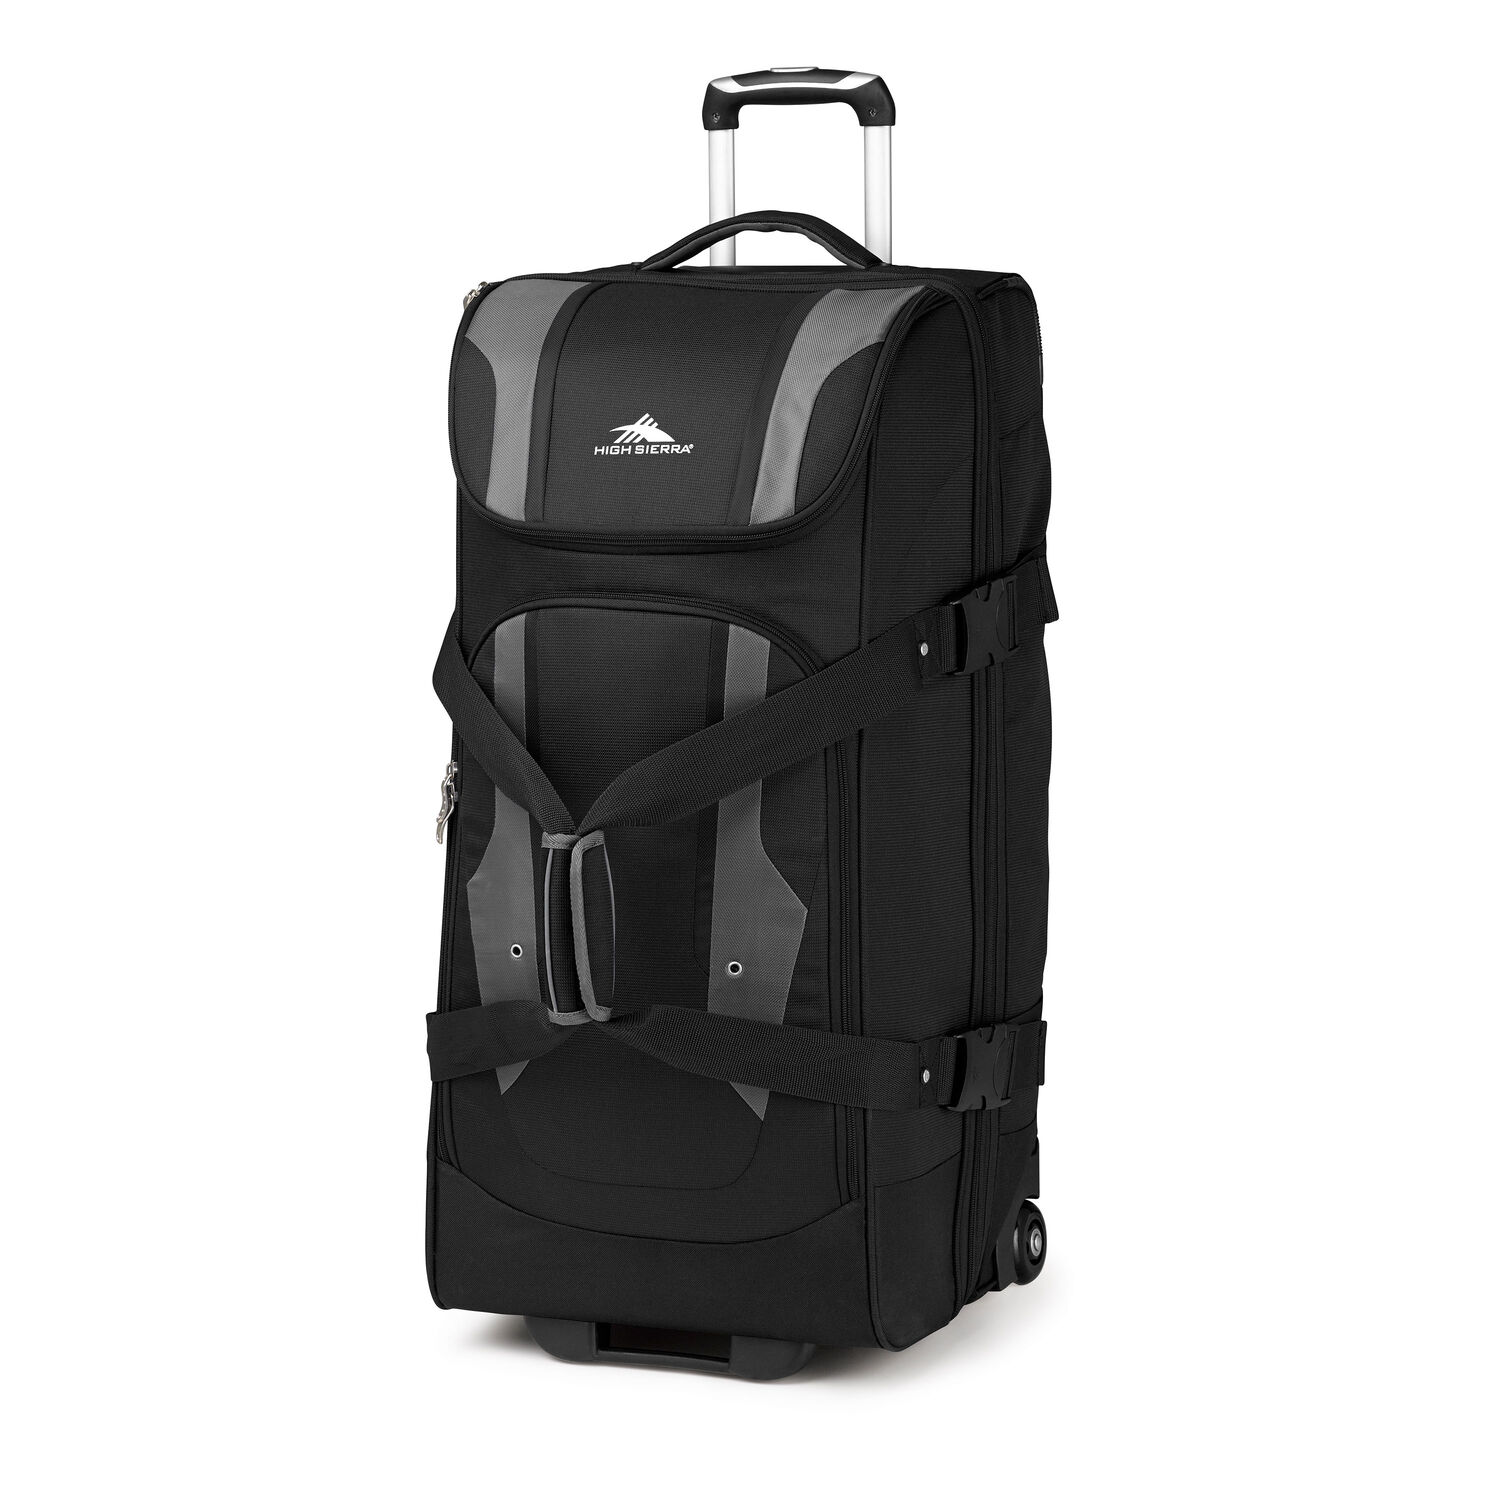 High sierra adventure access 32 wheeled duffel in the color black